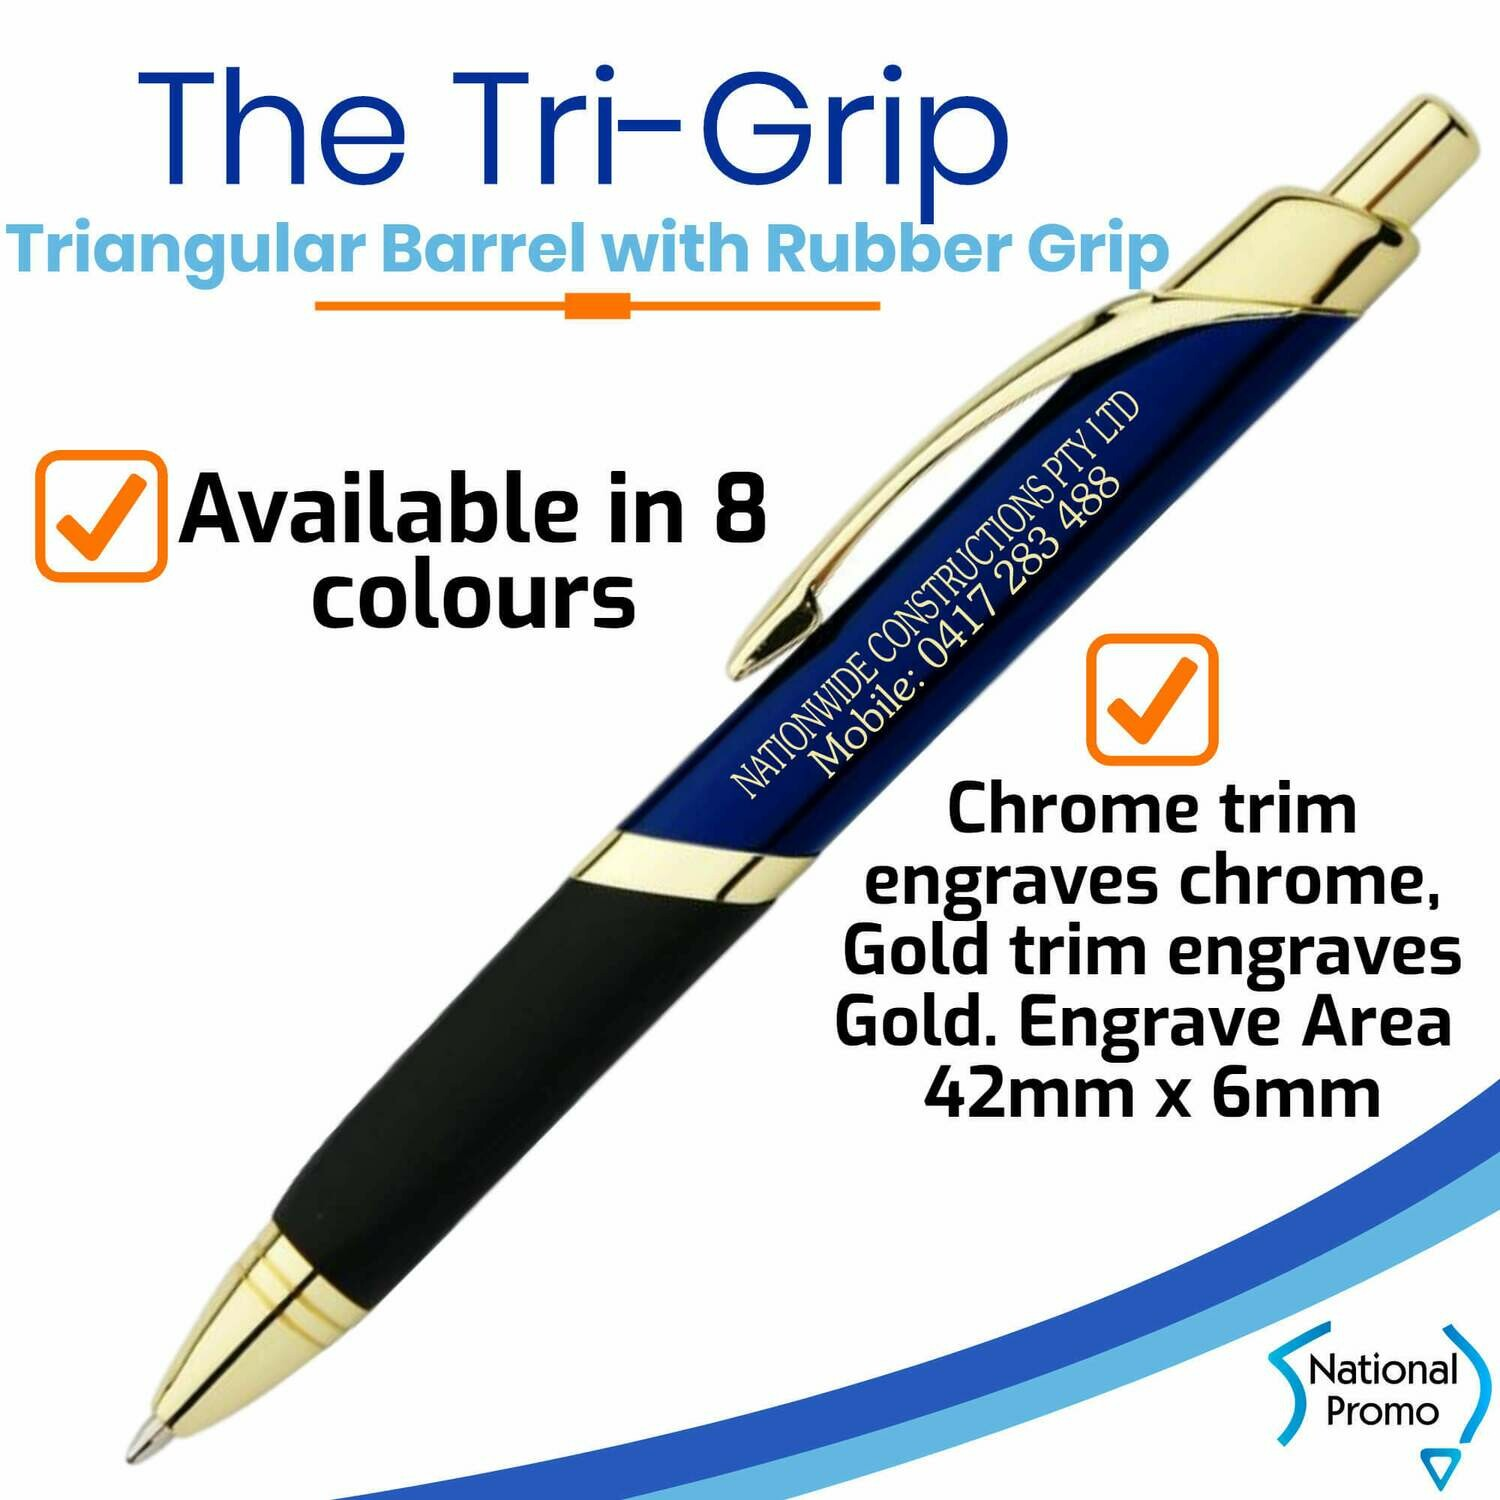 TRILOGY Tri-Grip Metal Pen - 50% OFF & FREE DELIVERY